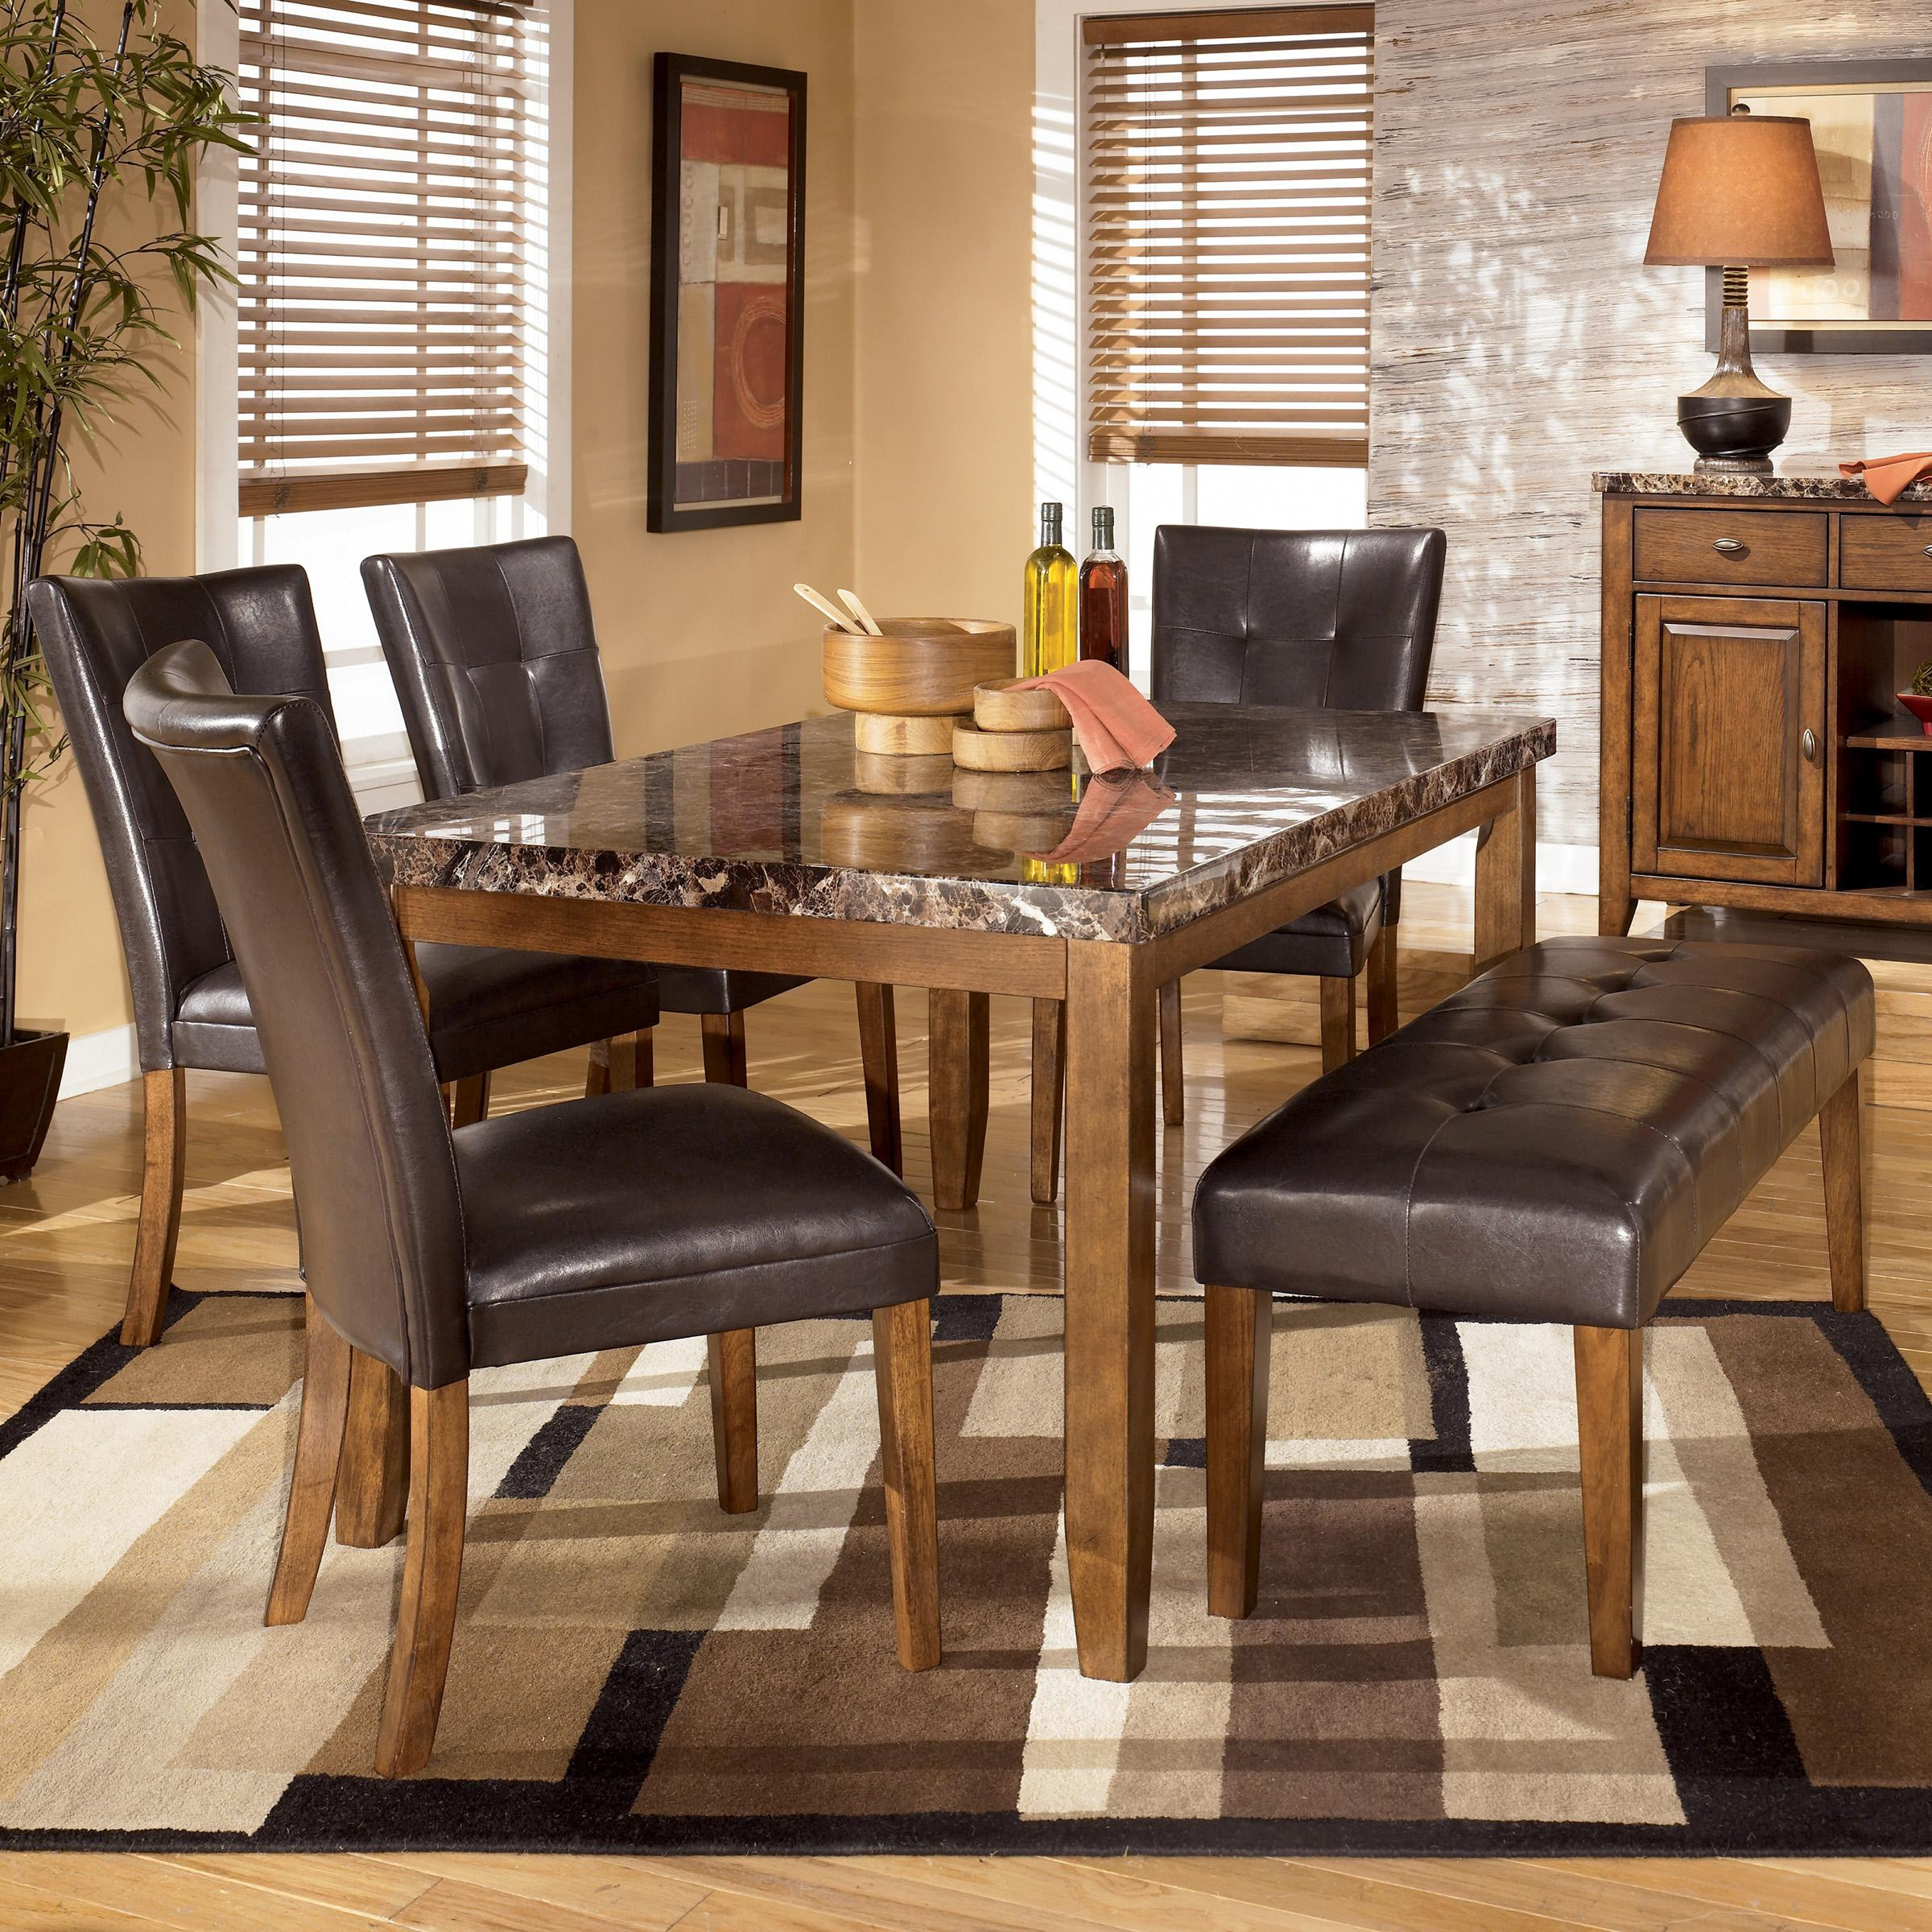 Best ideas about Ashley Furniture Dining Table . Save or Pin Signature Design by Ashley Lacey 6 Piece Dining Table with Now.